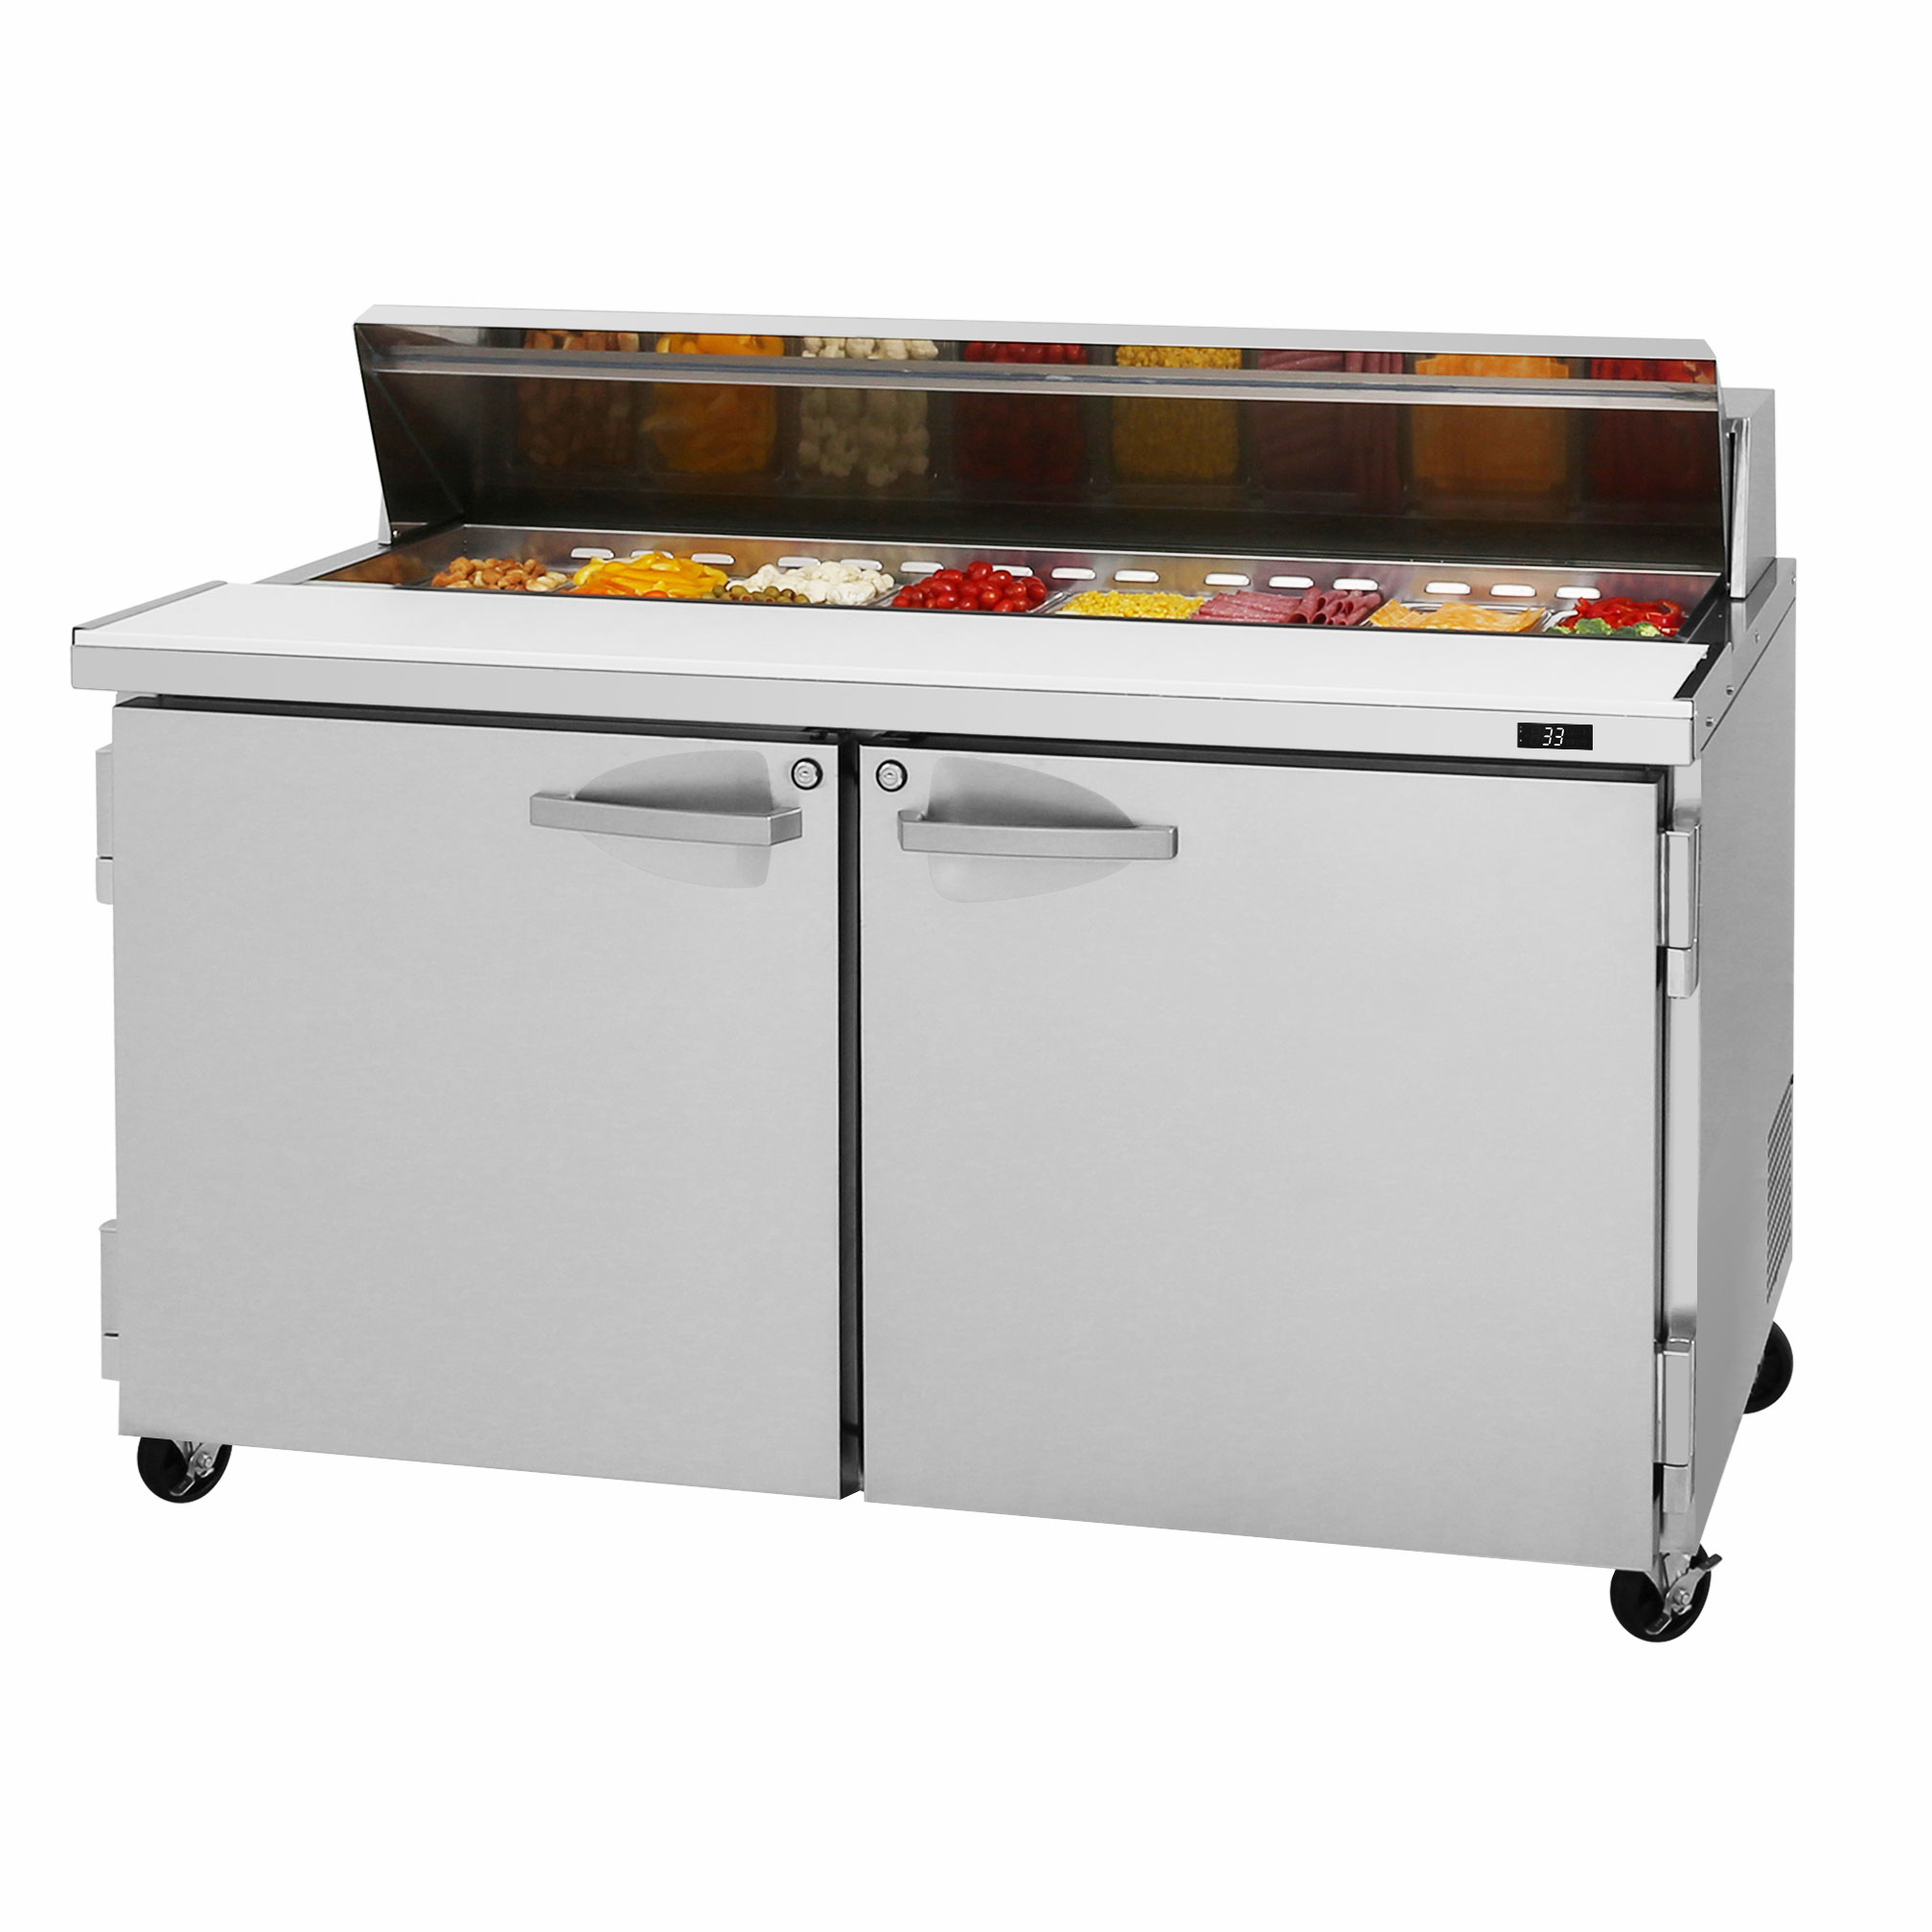 Turbo Air PST-60-N refrigerated counter, sandwich / salad unit